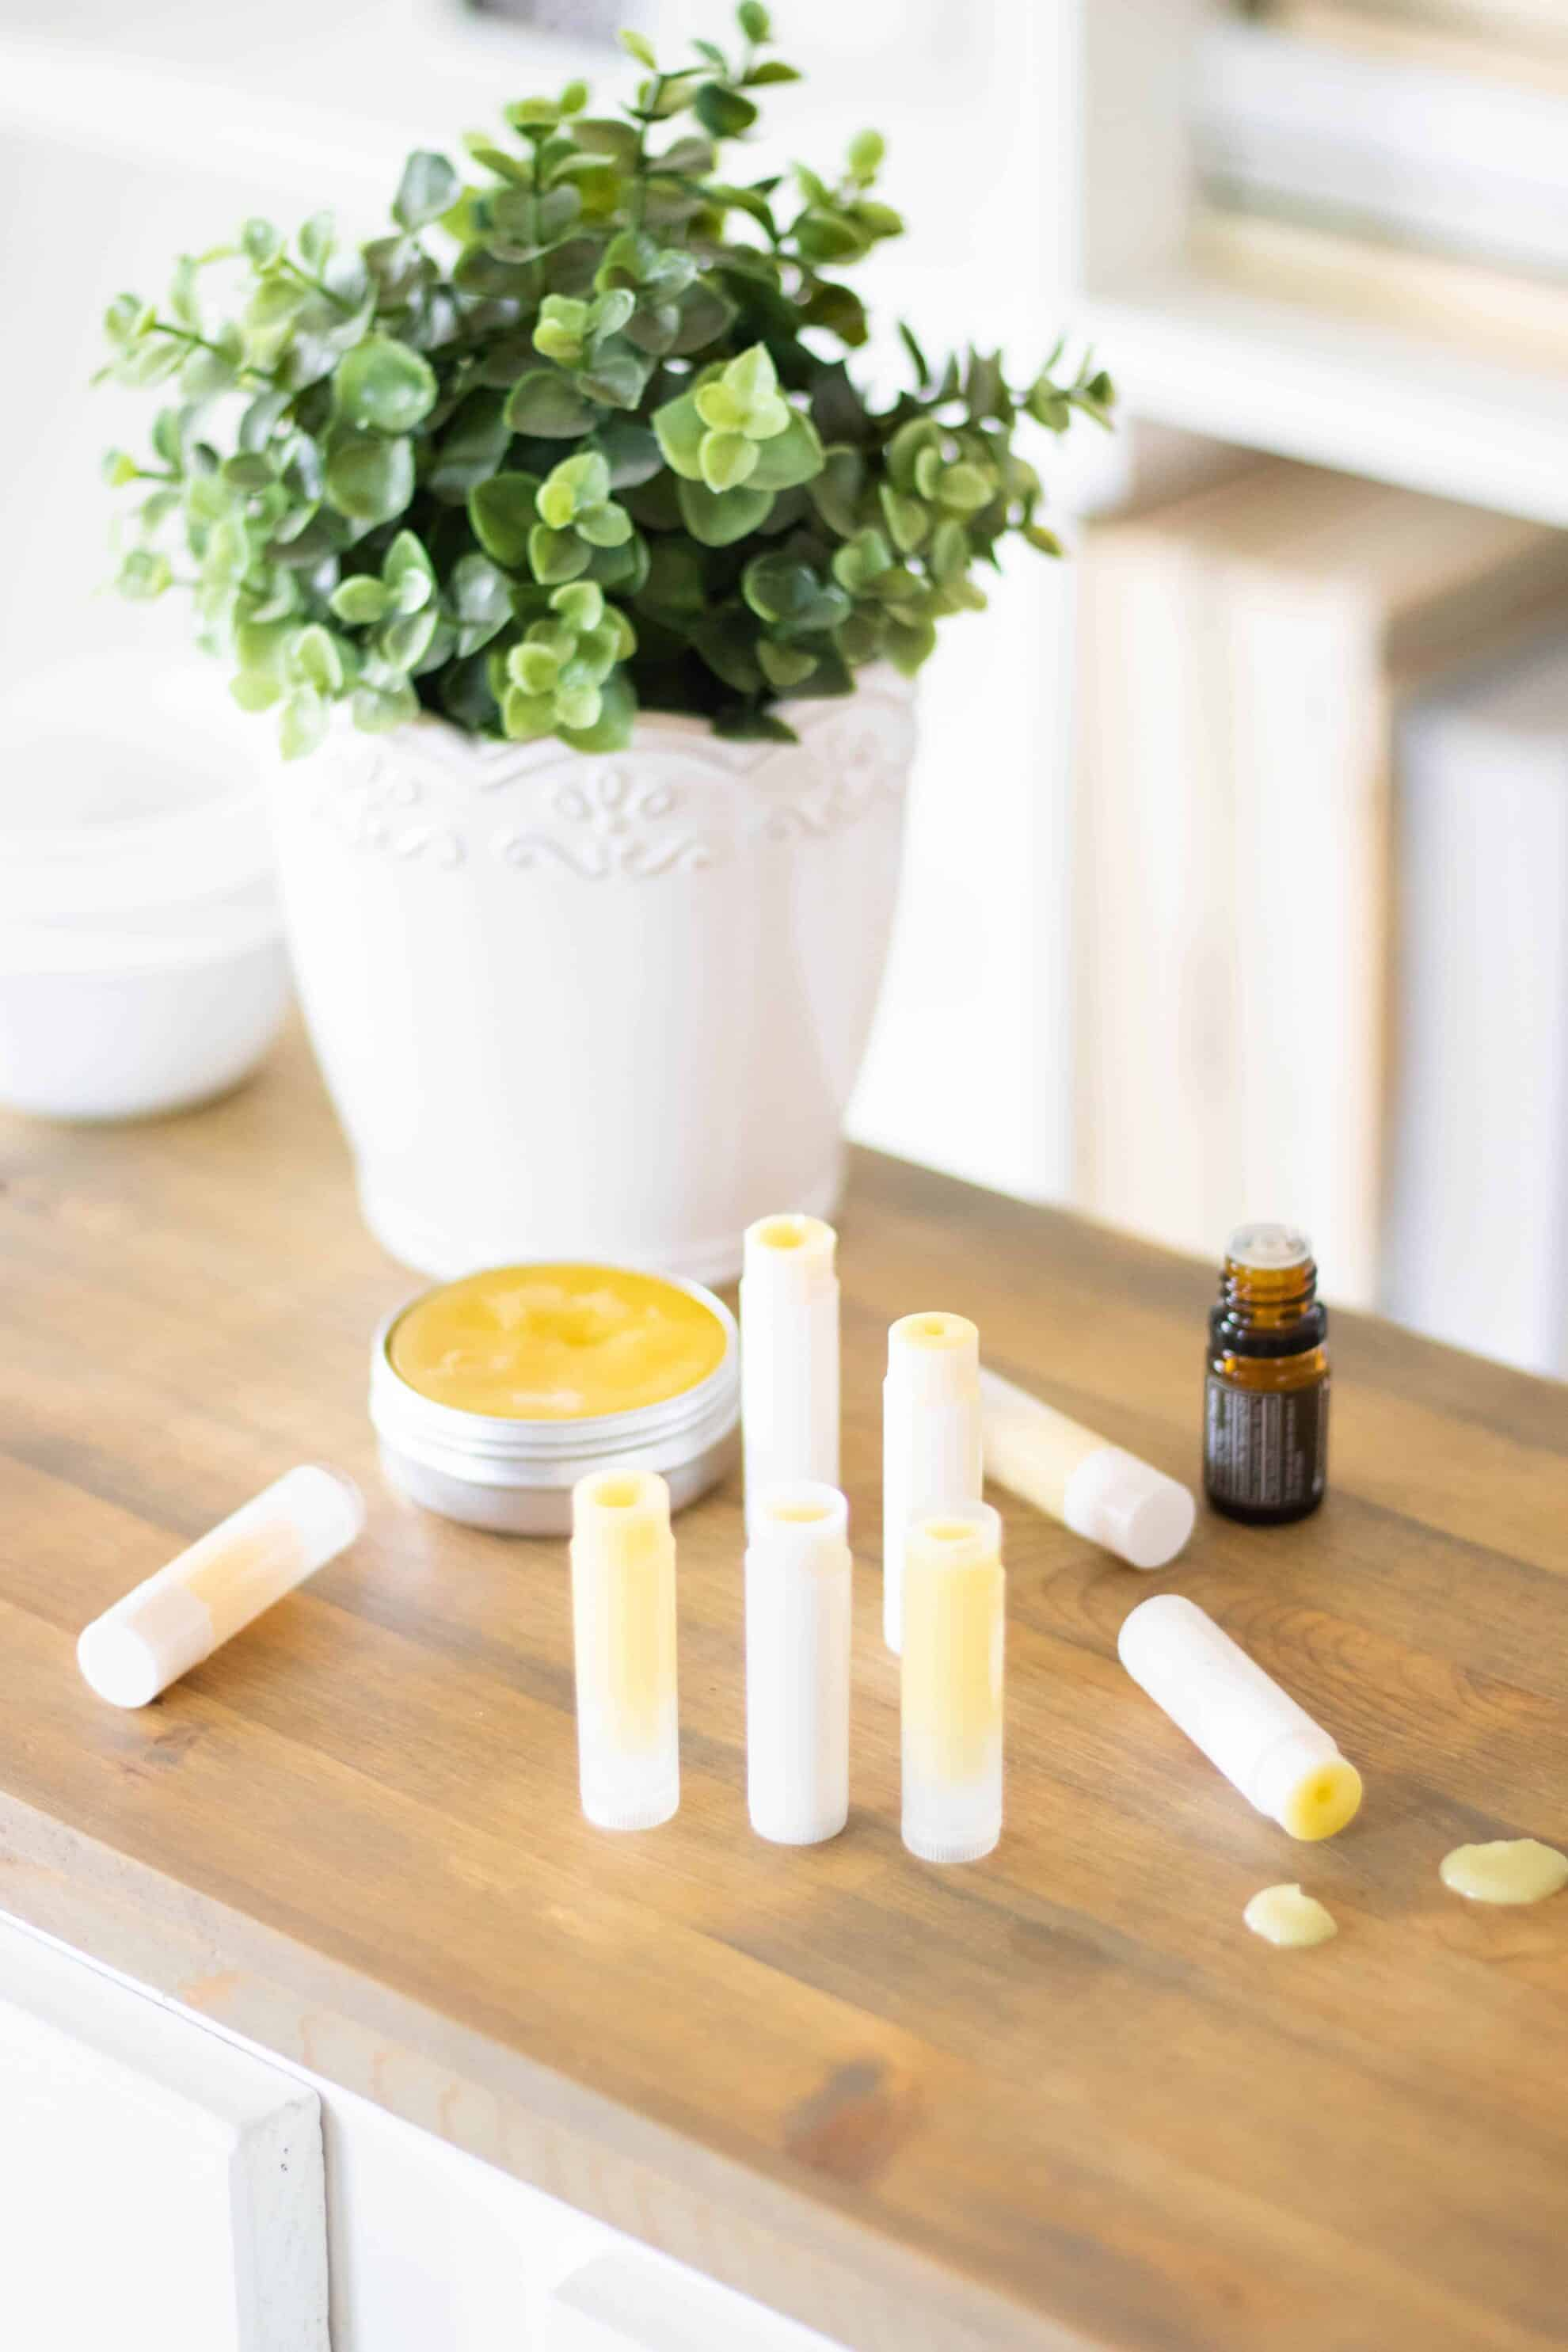 Anti itch cream in lip balm tubes on wooden table.